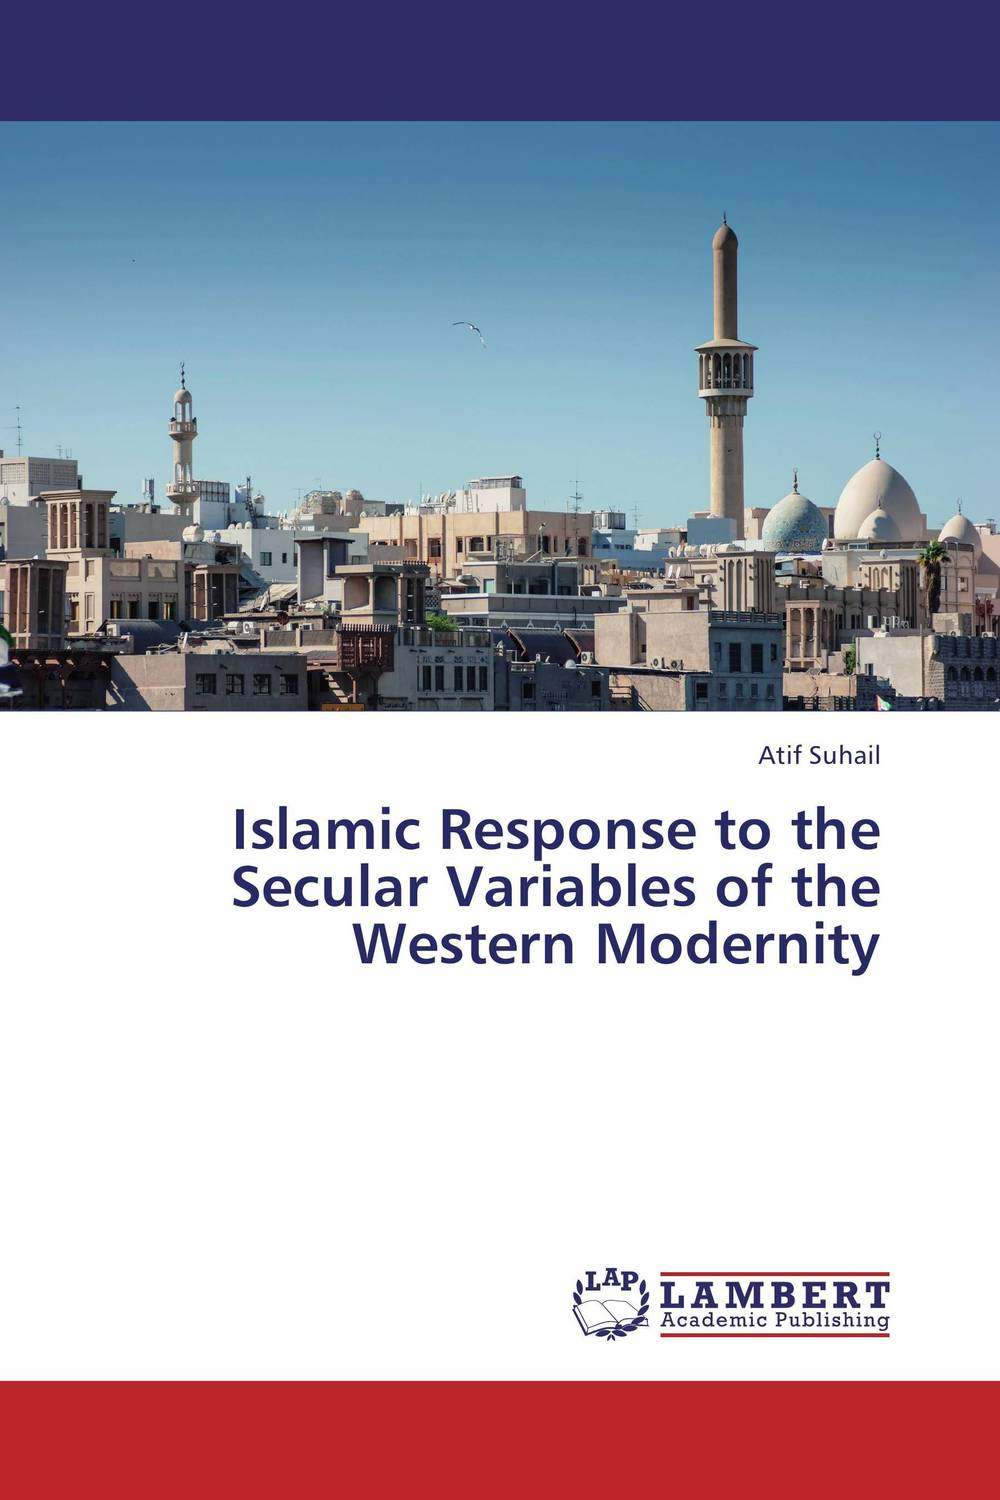 Islamic Response to the Secular Variables of the Western Modernity